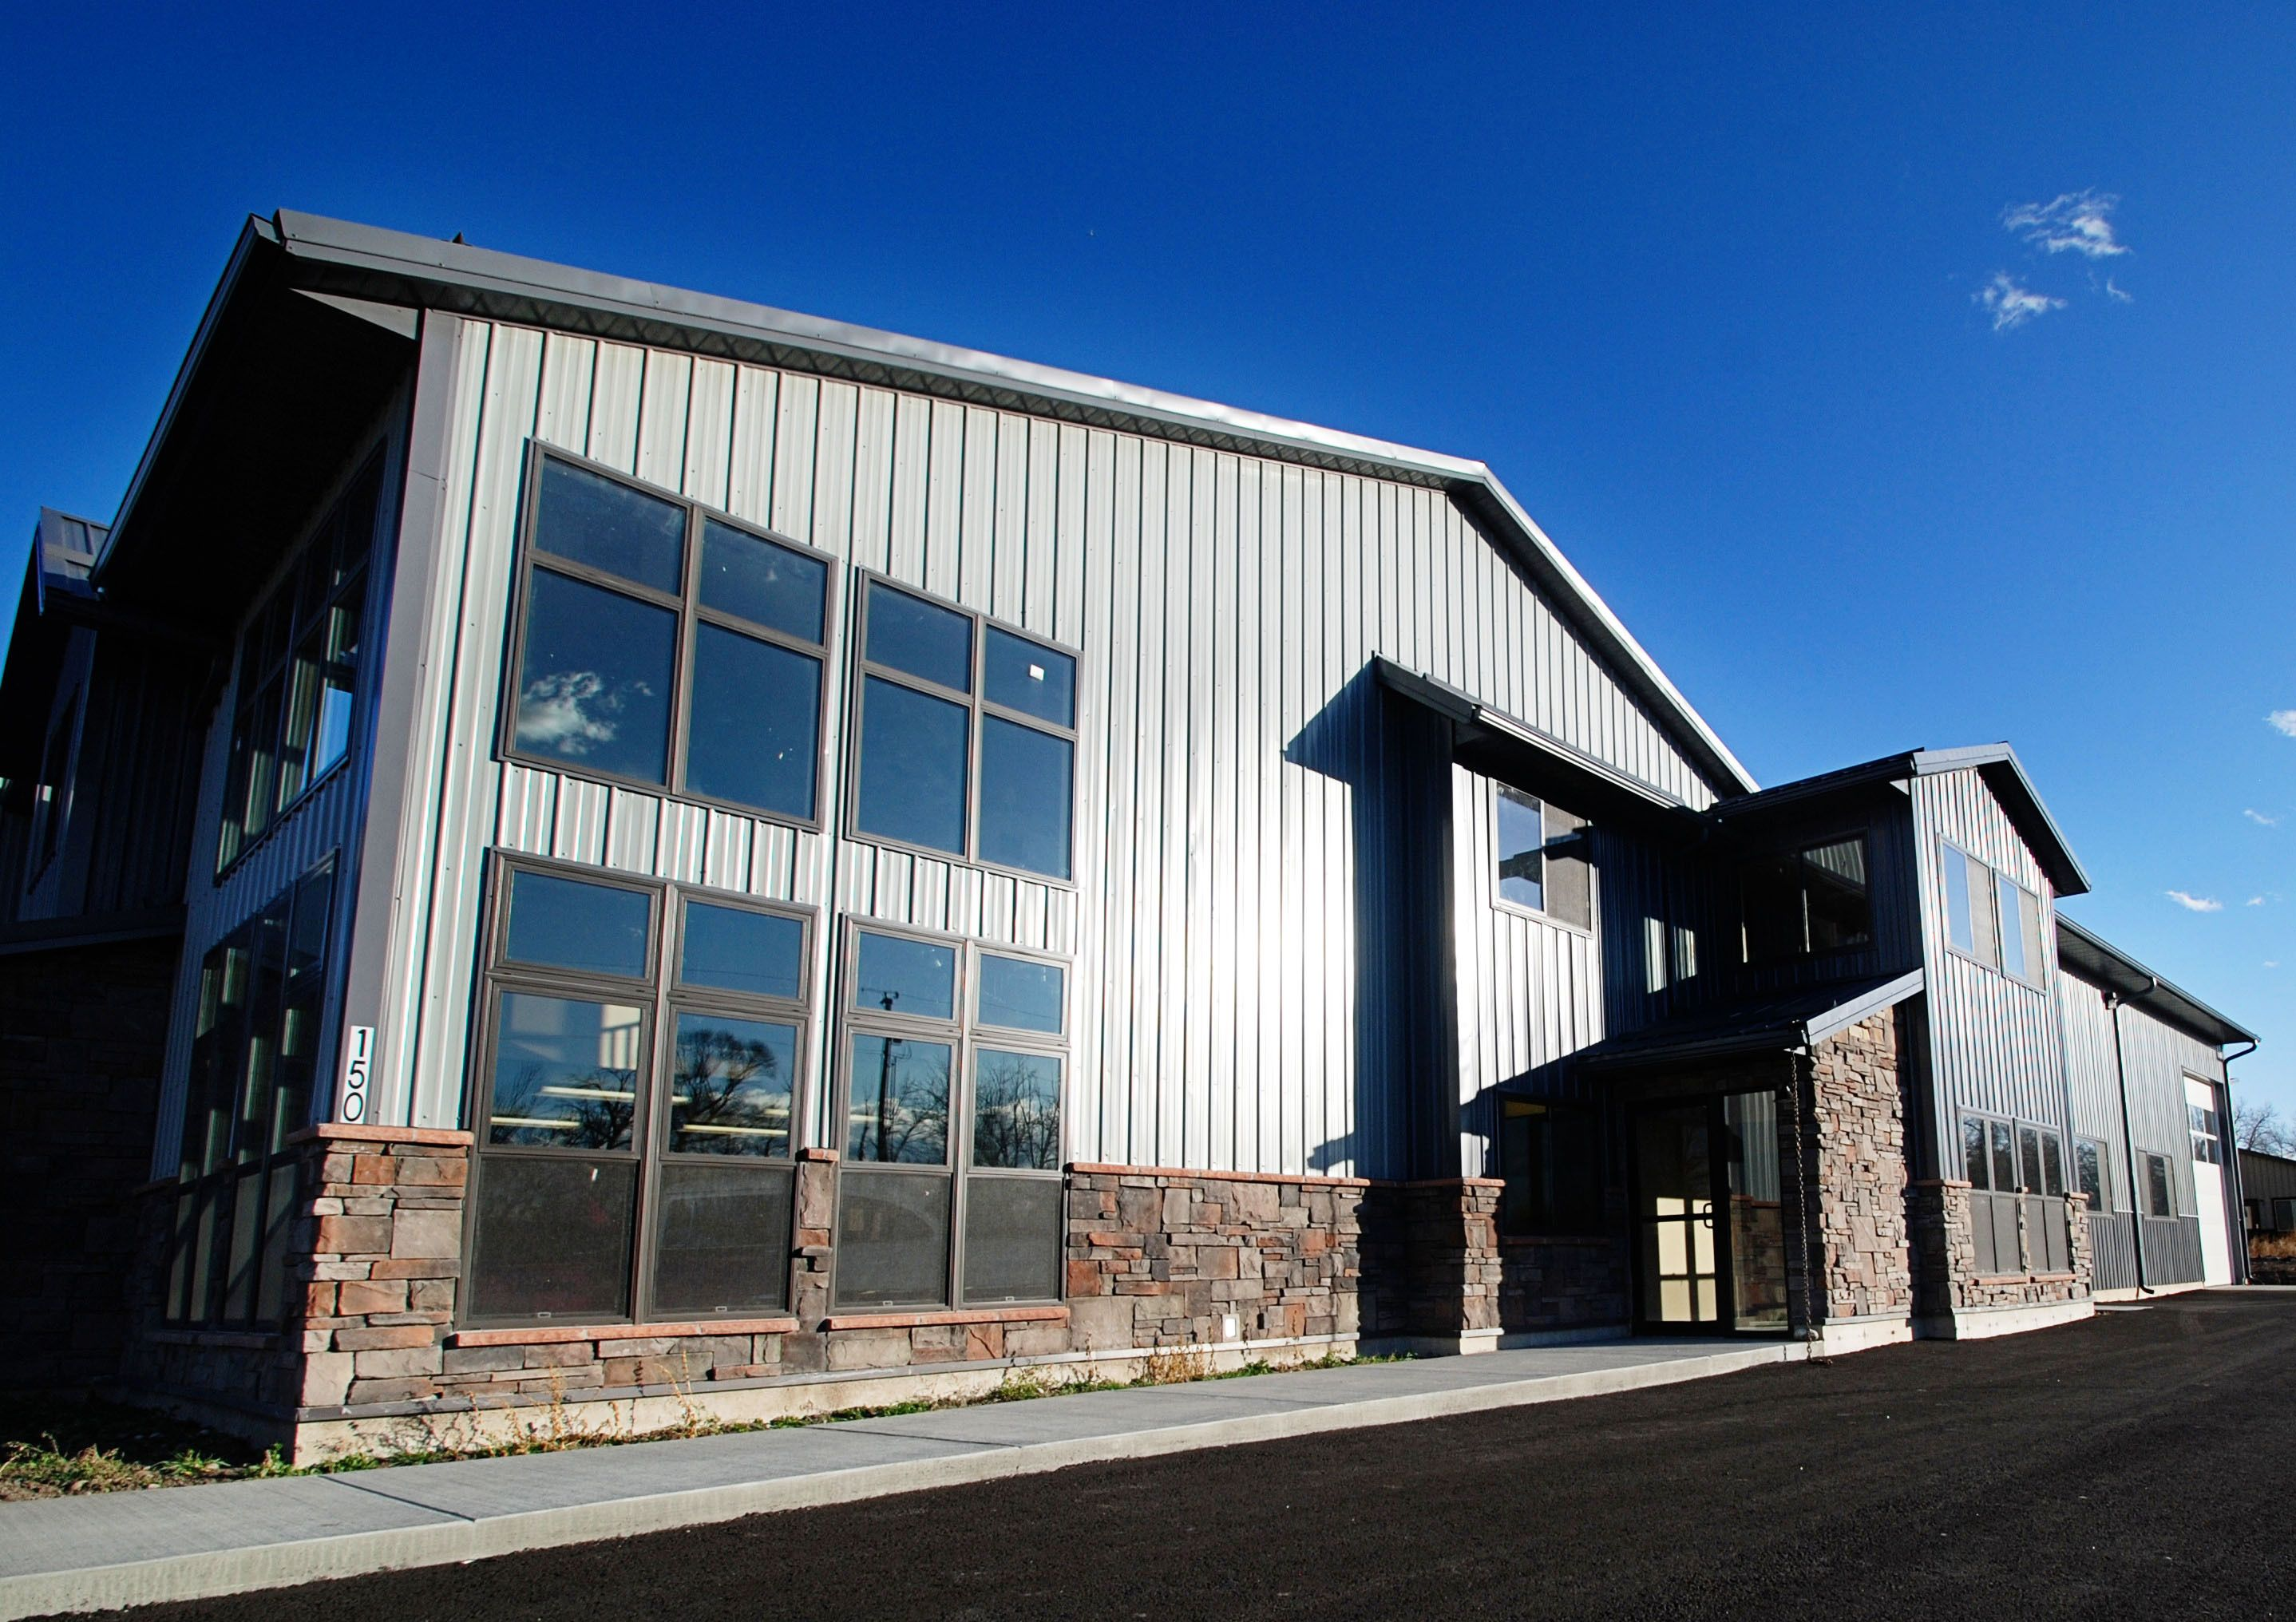 Commercial Project With Tuf Rib Siding Cladding Design Warehouse Design Warehouses Exterior